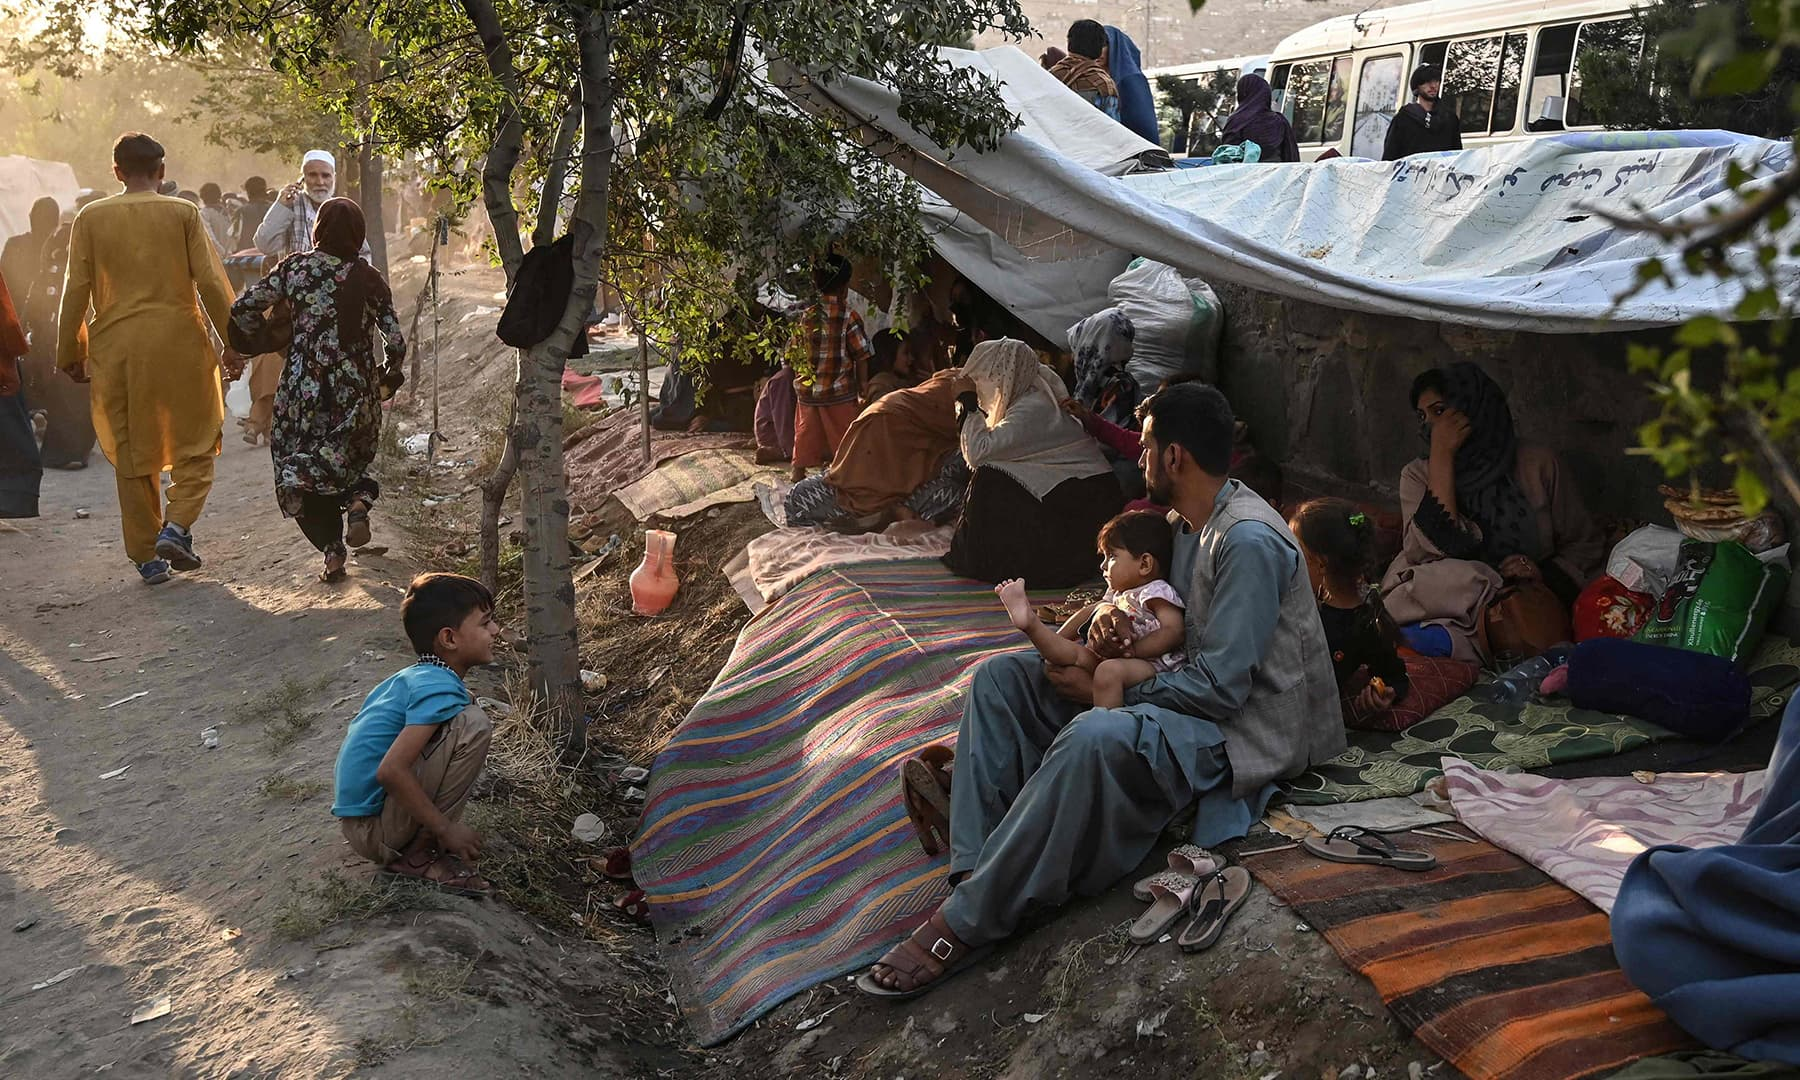 Internally displaced Afghan families, who fled from Kunduz, Takhar and Baghlan provinces due to battles between Taliban and Afghan security forces, sit in front of their temporary tents at Sara-e-Shamali in Kabul on August 11. — AFP